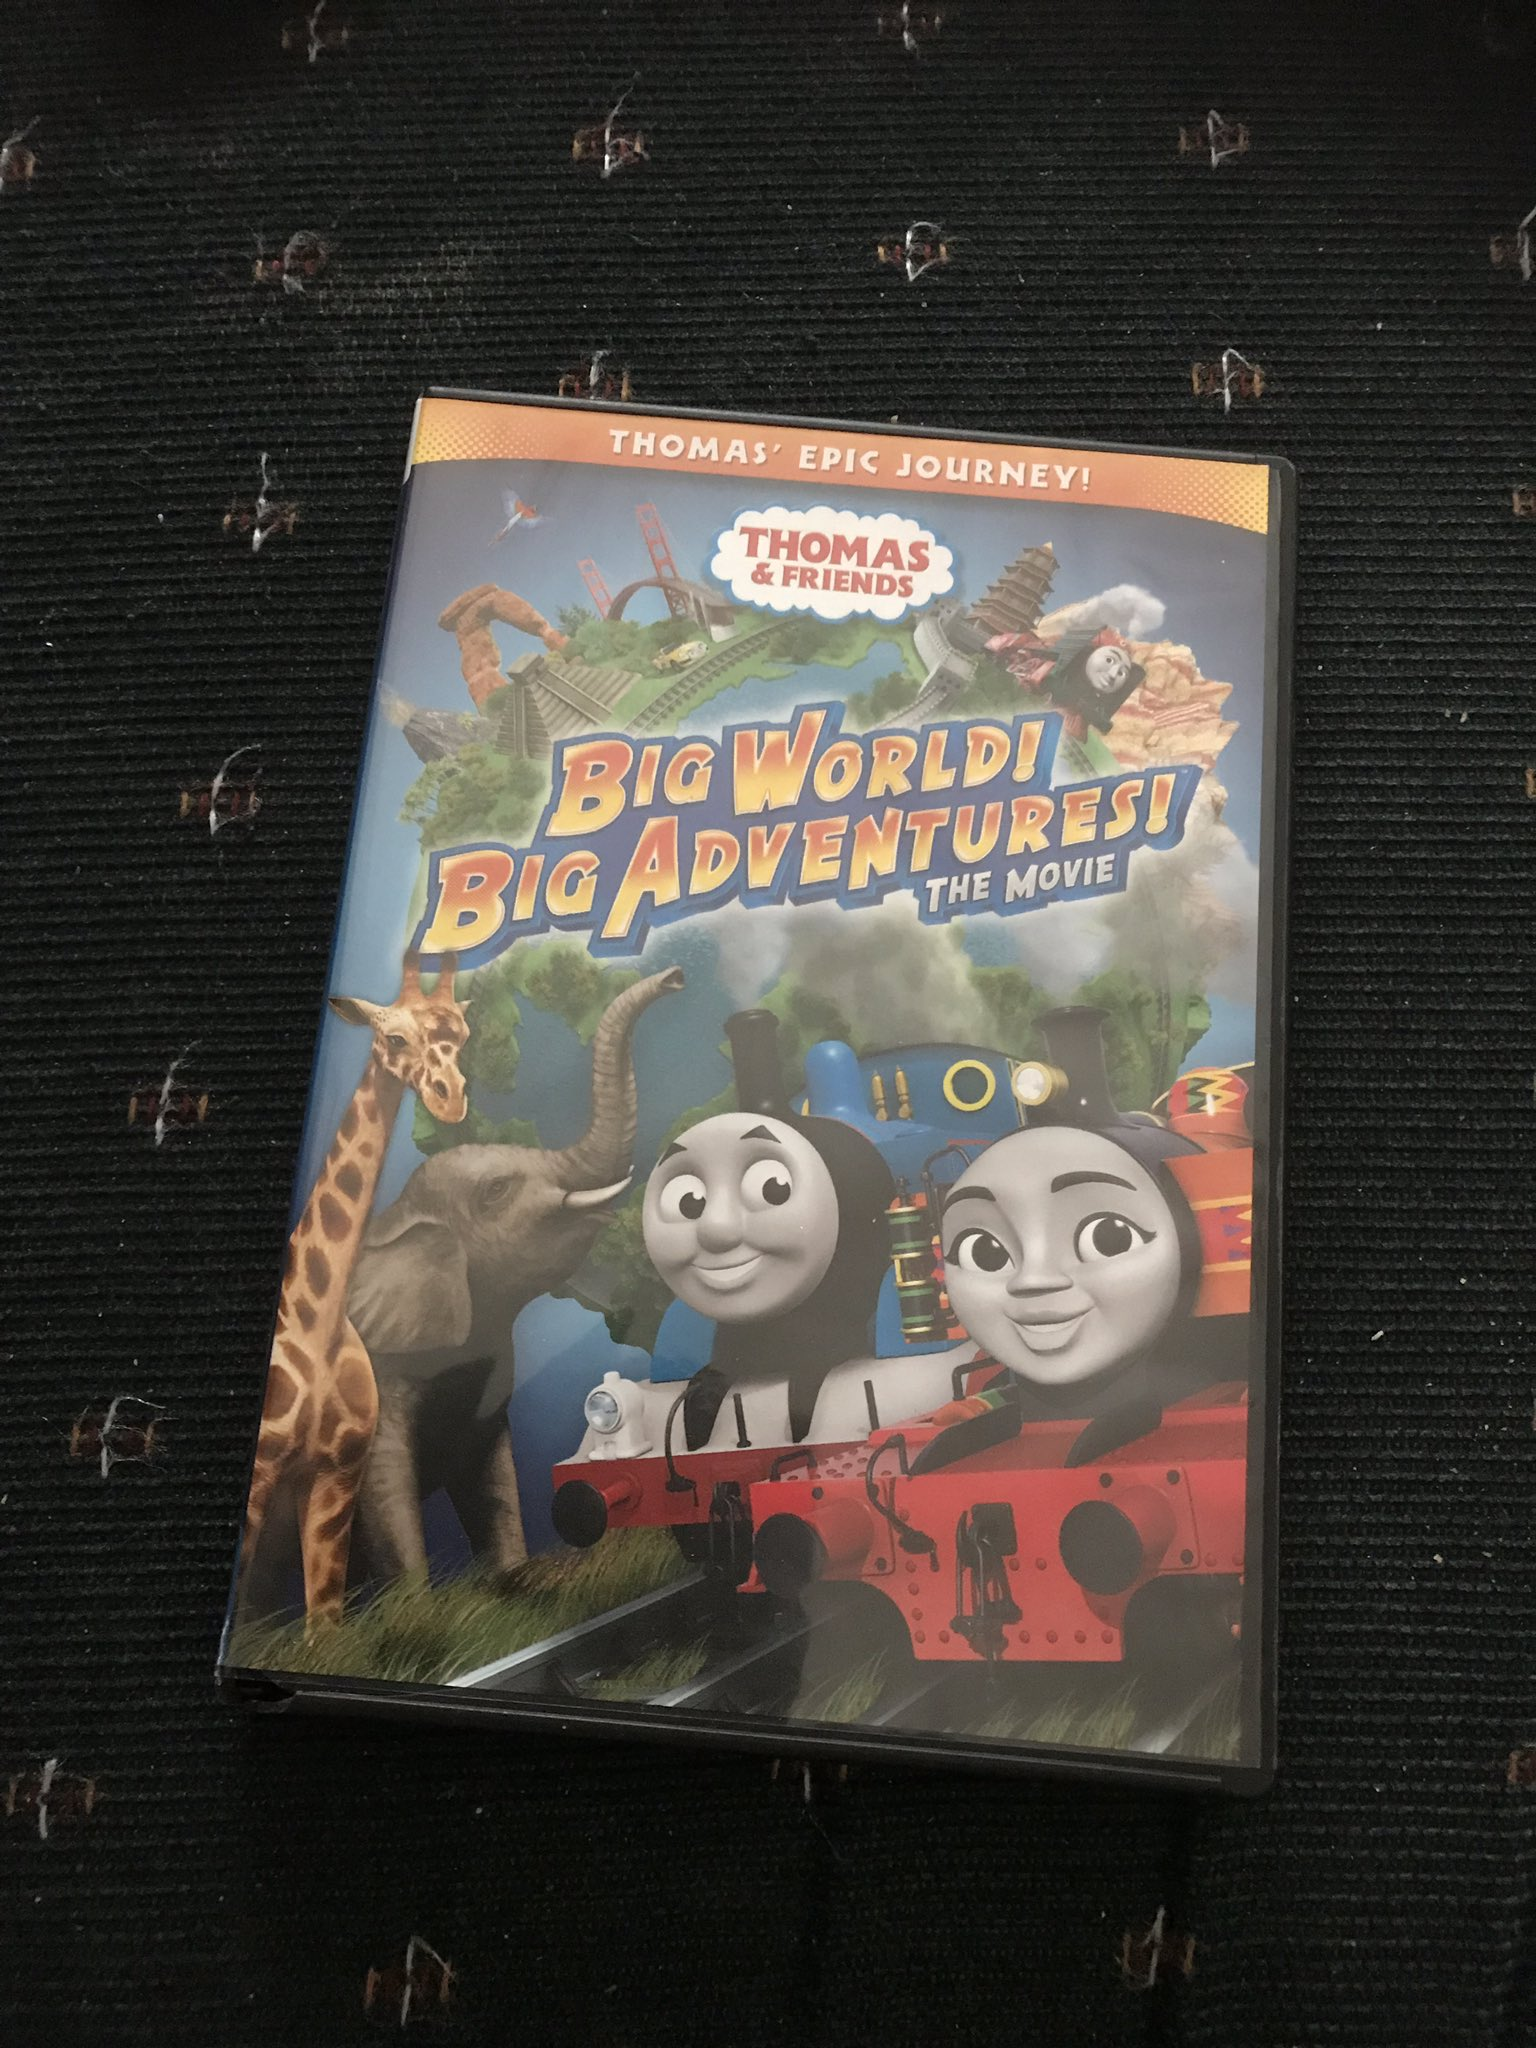 Thomas Stansfield On Twitter Got The Us Dvd Of Bwba Today The Audio Maybe Down Pitched But At Least The Quality Of Dvd Doesn T Look Like Interlaced Crap Https T Co Sfrppiwdnq